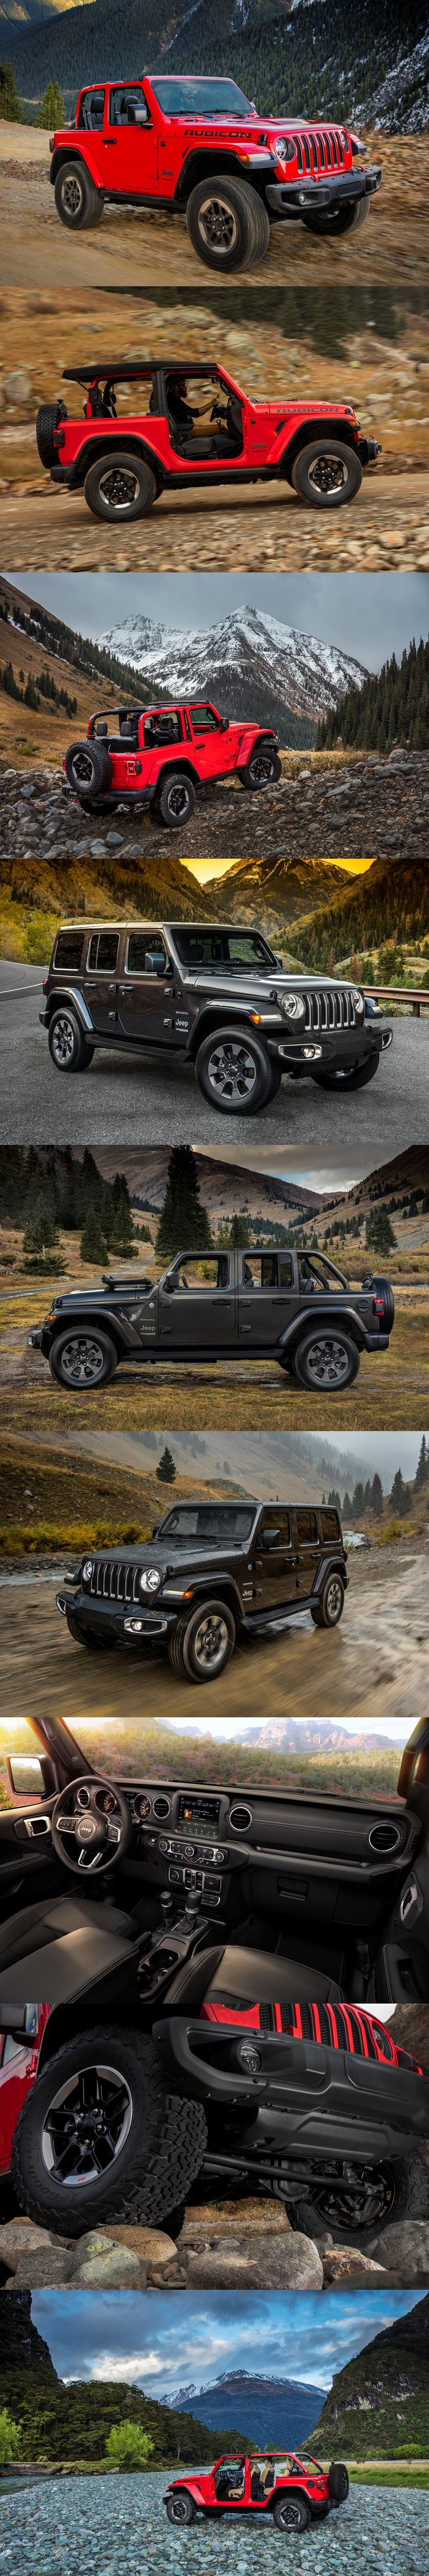 Jeep Tried But Failed To Keep This Wrangler Discount A Secret